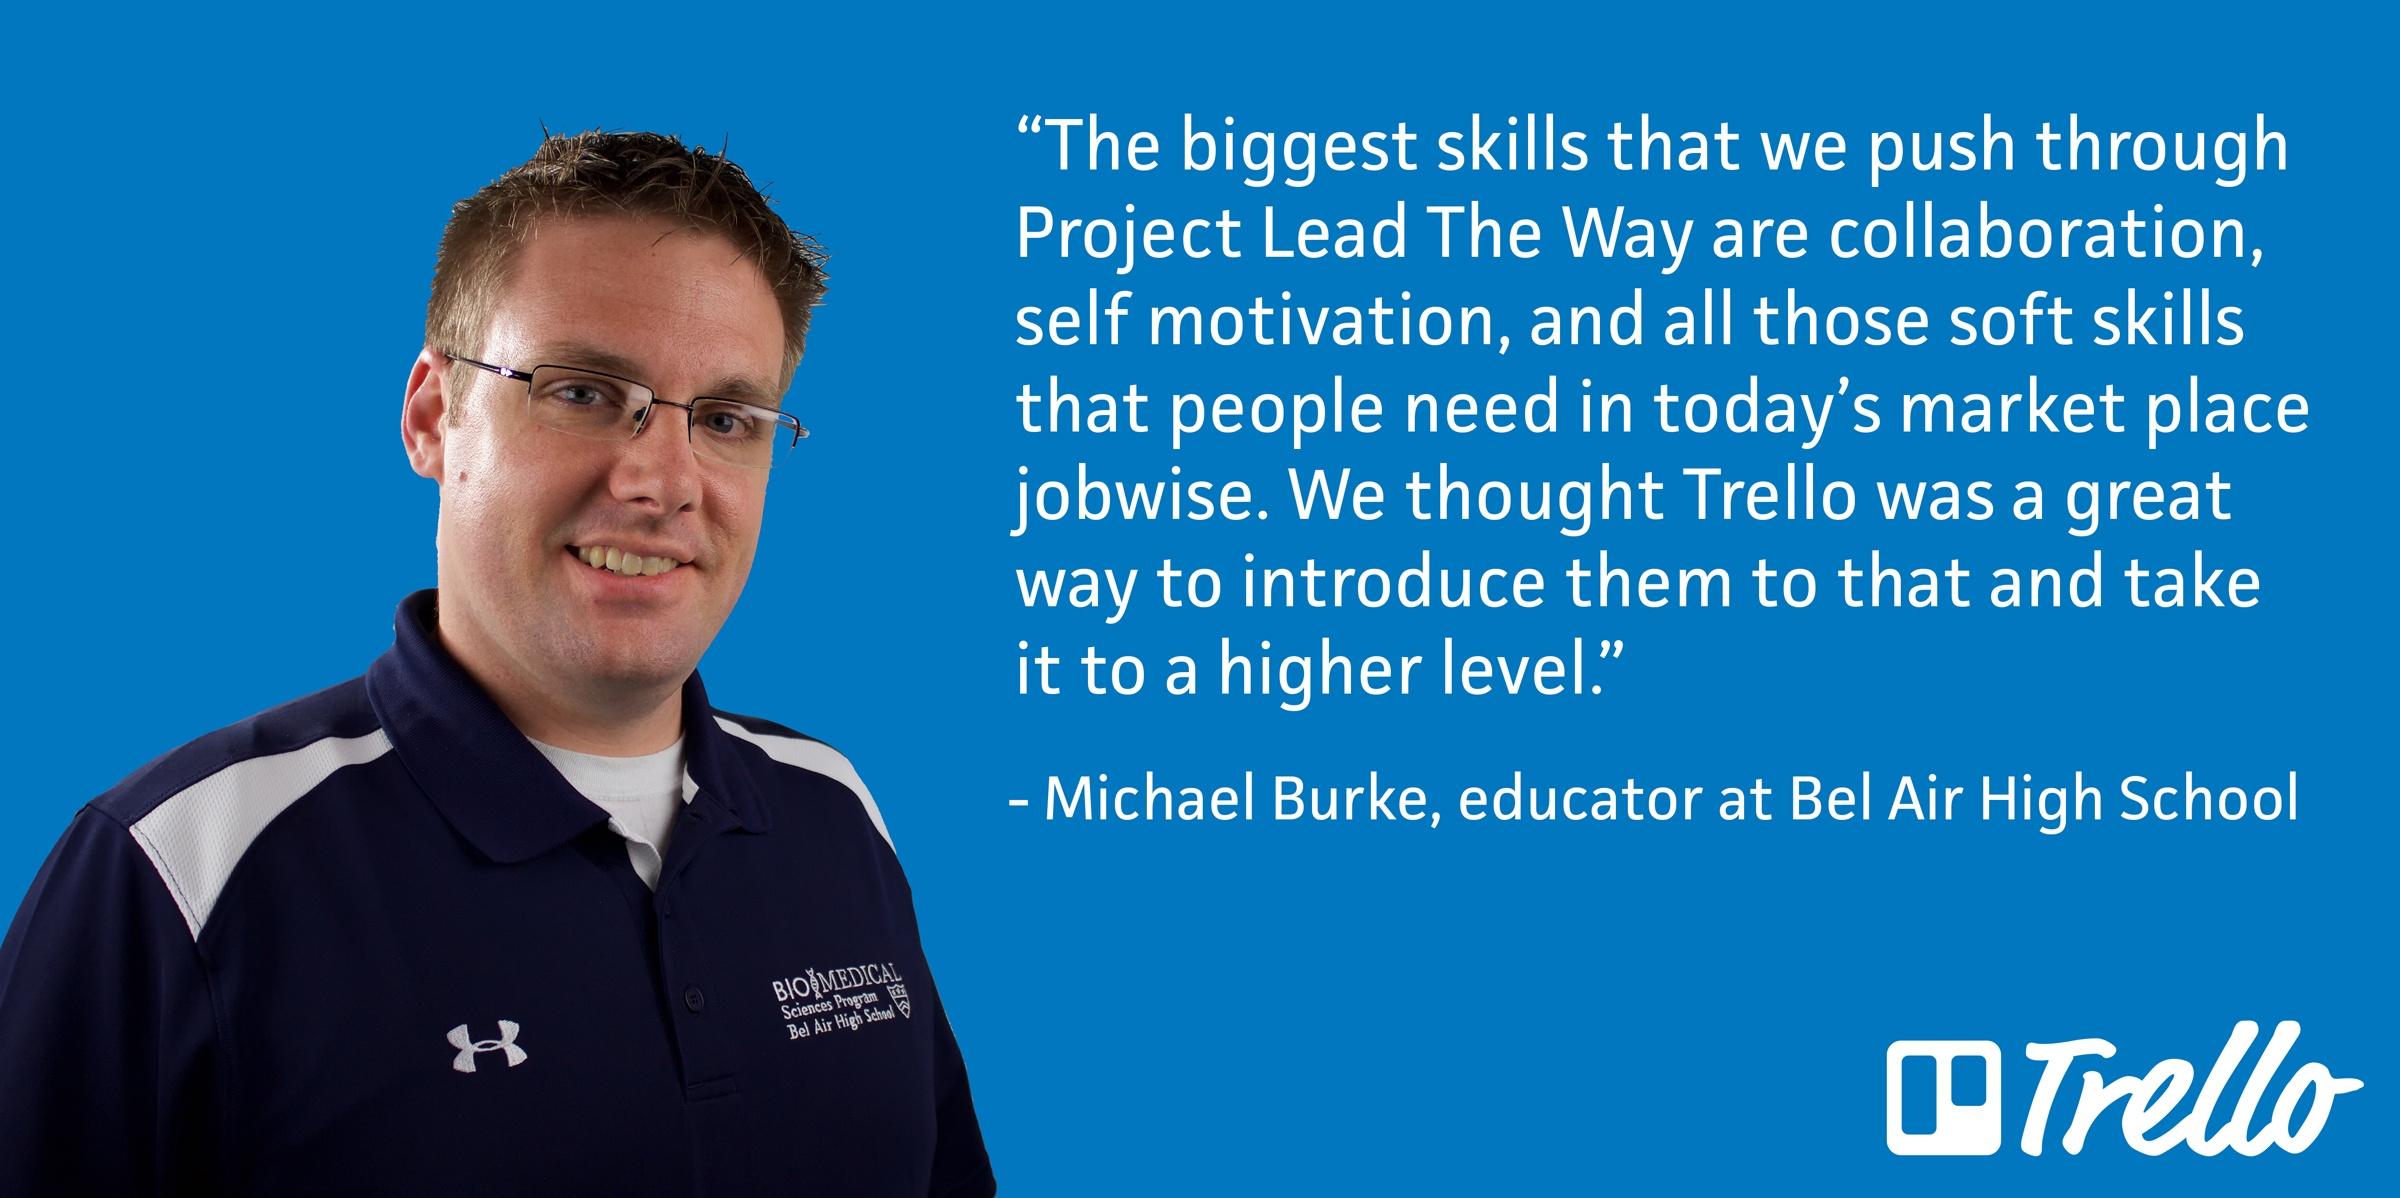 project based learning with trello and project lead the way